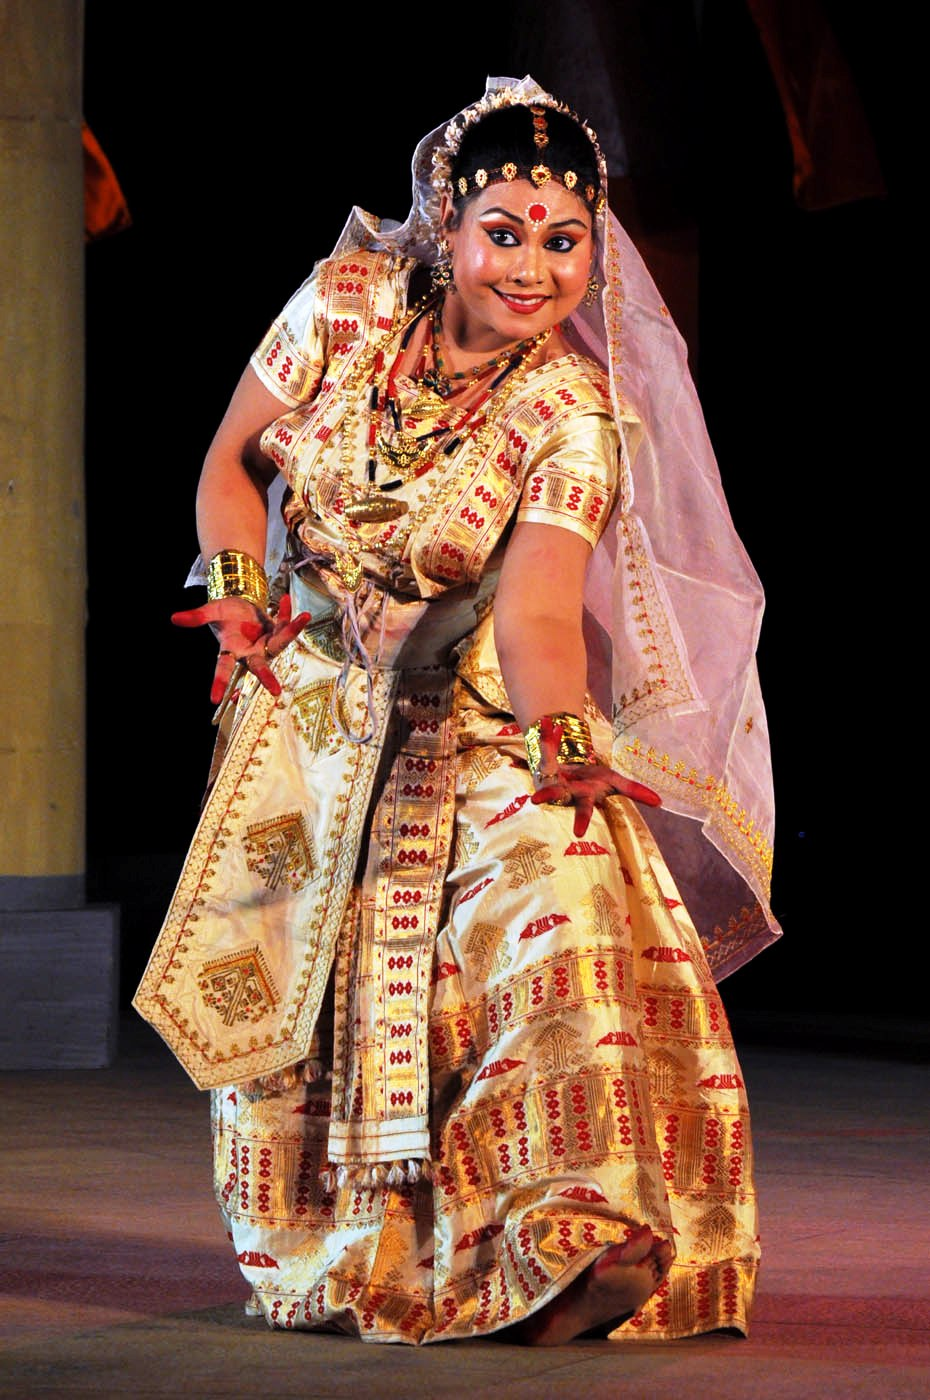 Sattriya by Manashri Dihingiya from Guwahati at 7th PRAGJYOTI INTERNATIONAL DANCE FESTIVAL GHY 4